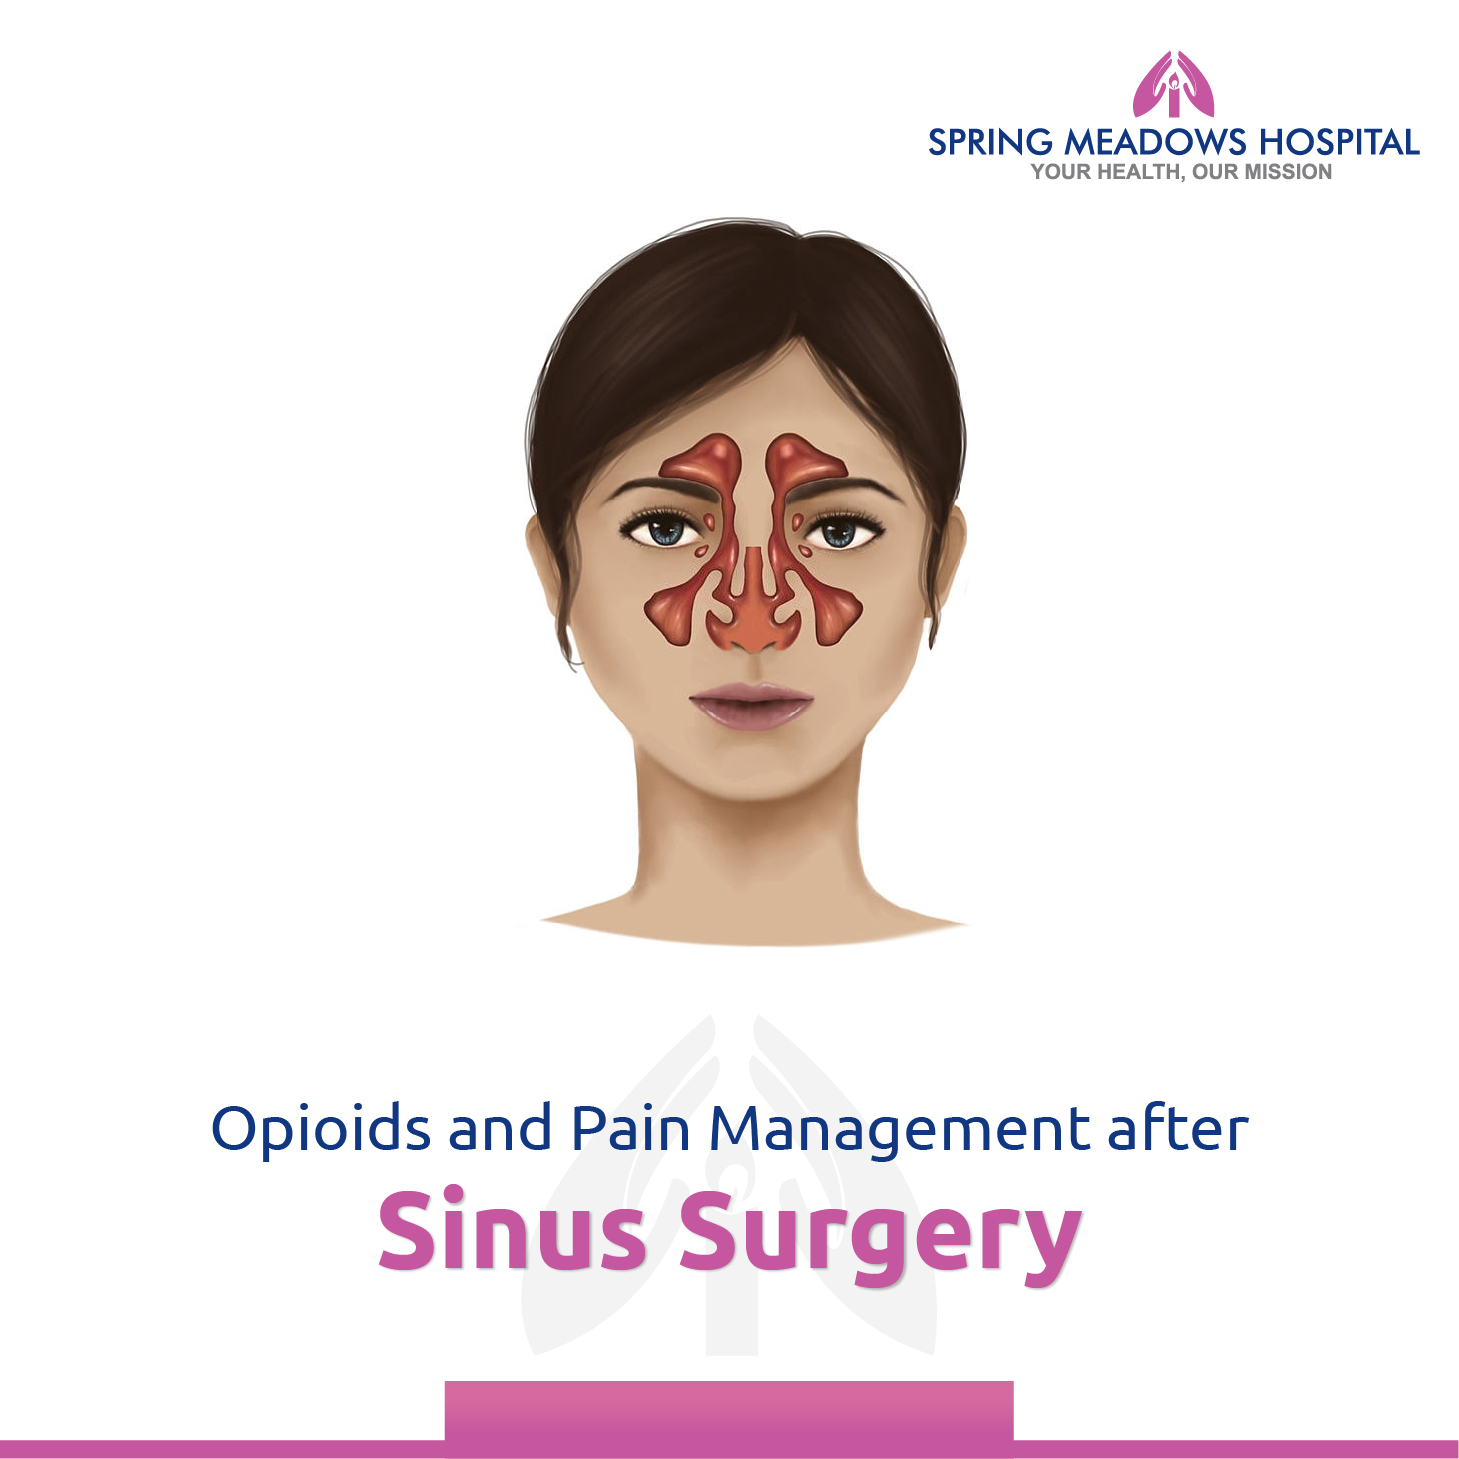 Opioids and Pain Management after Sinus Surgery | Spring Meadows Hospital